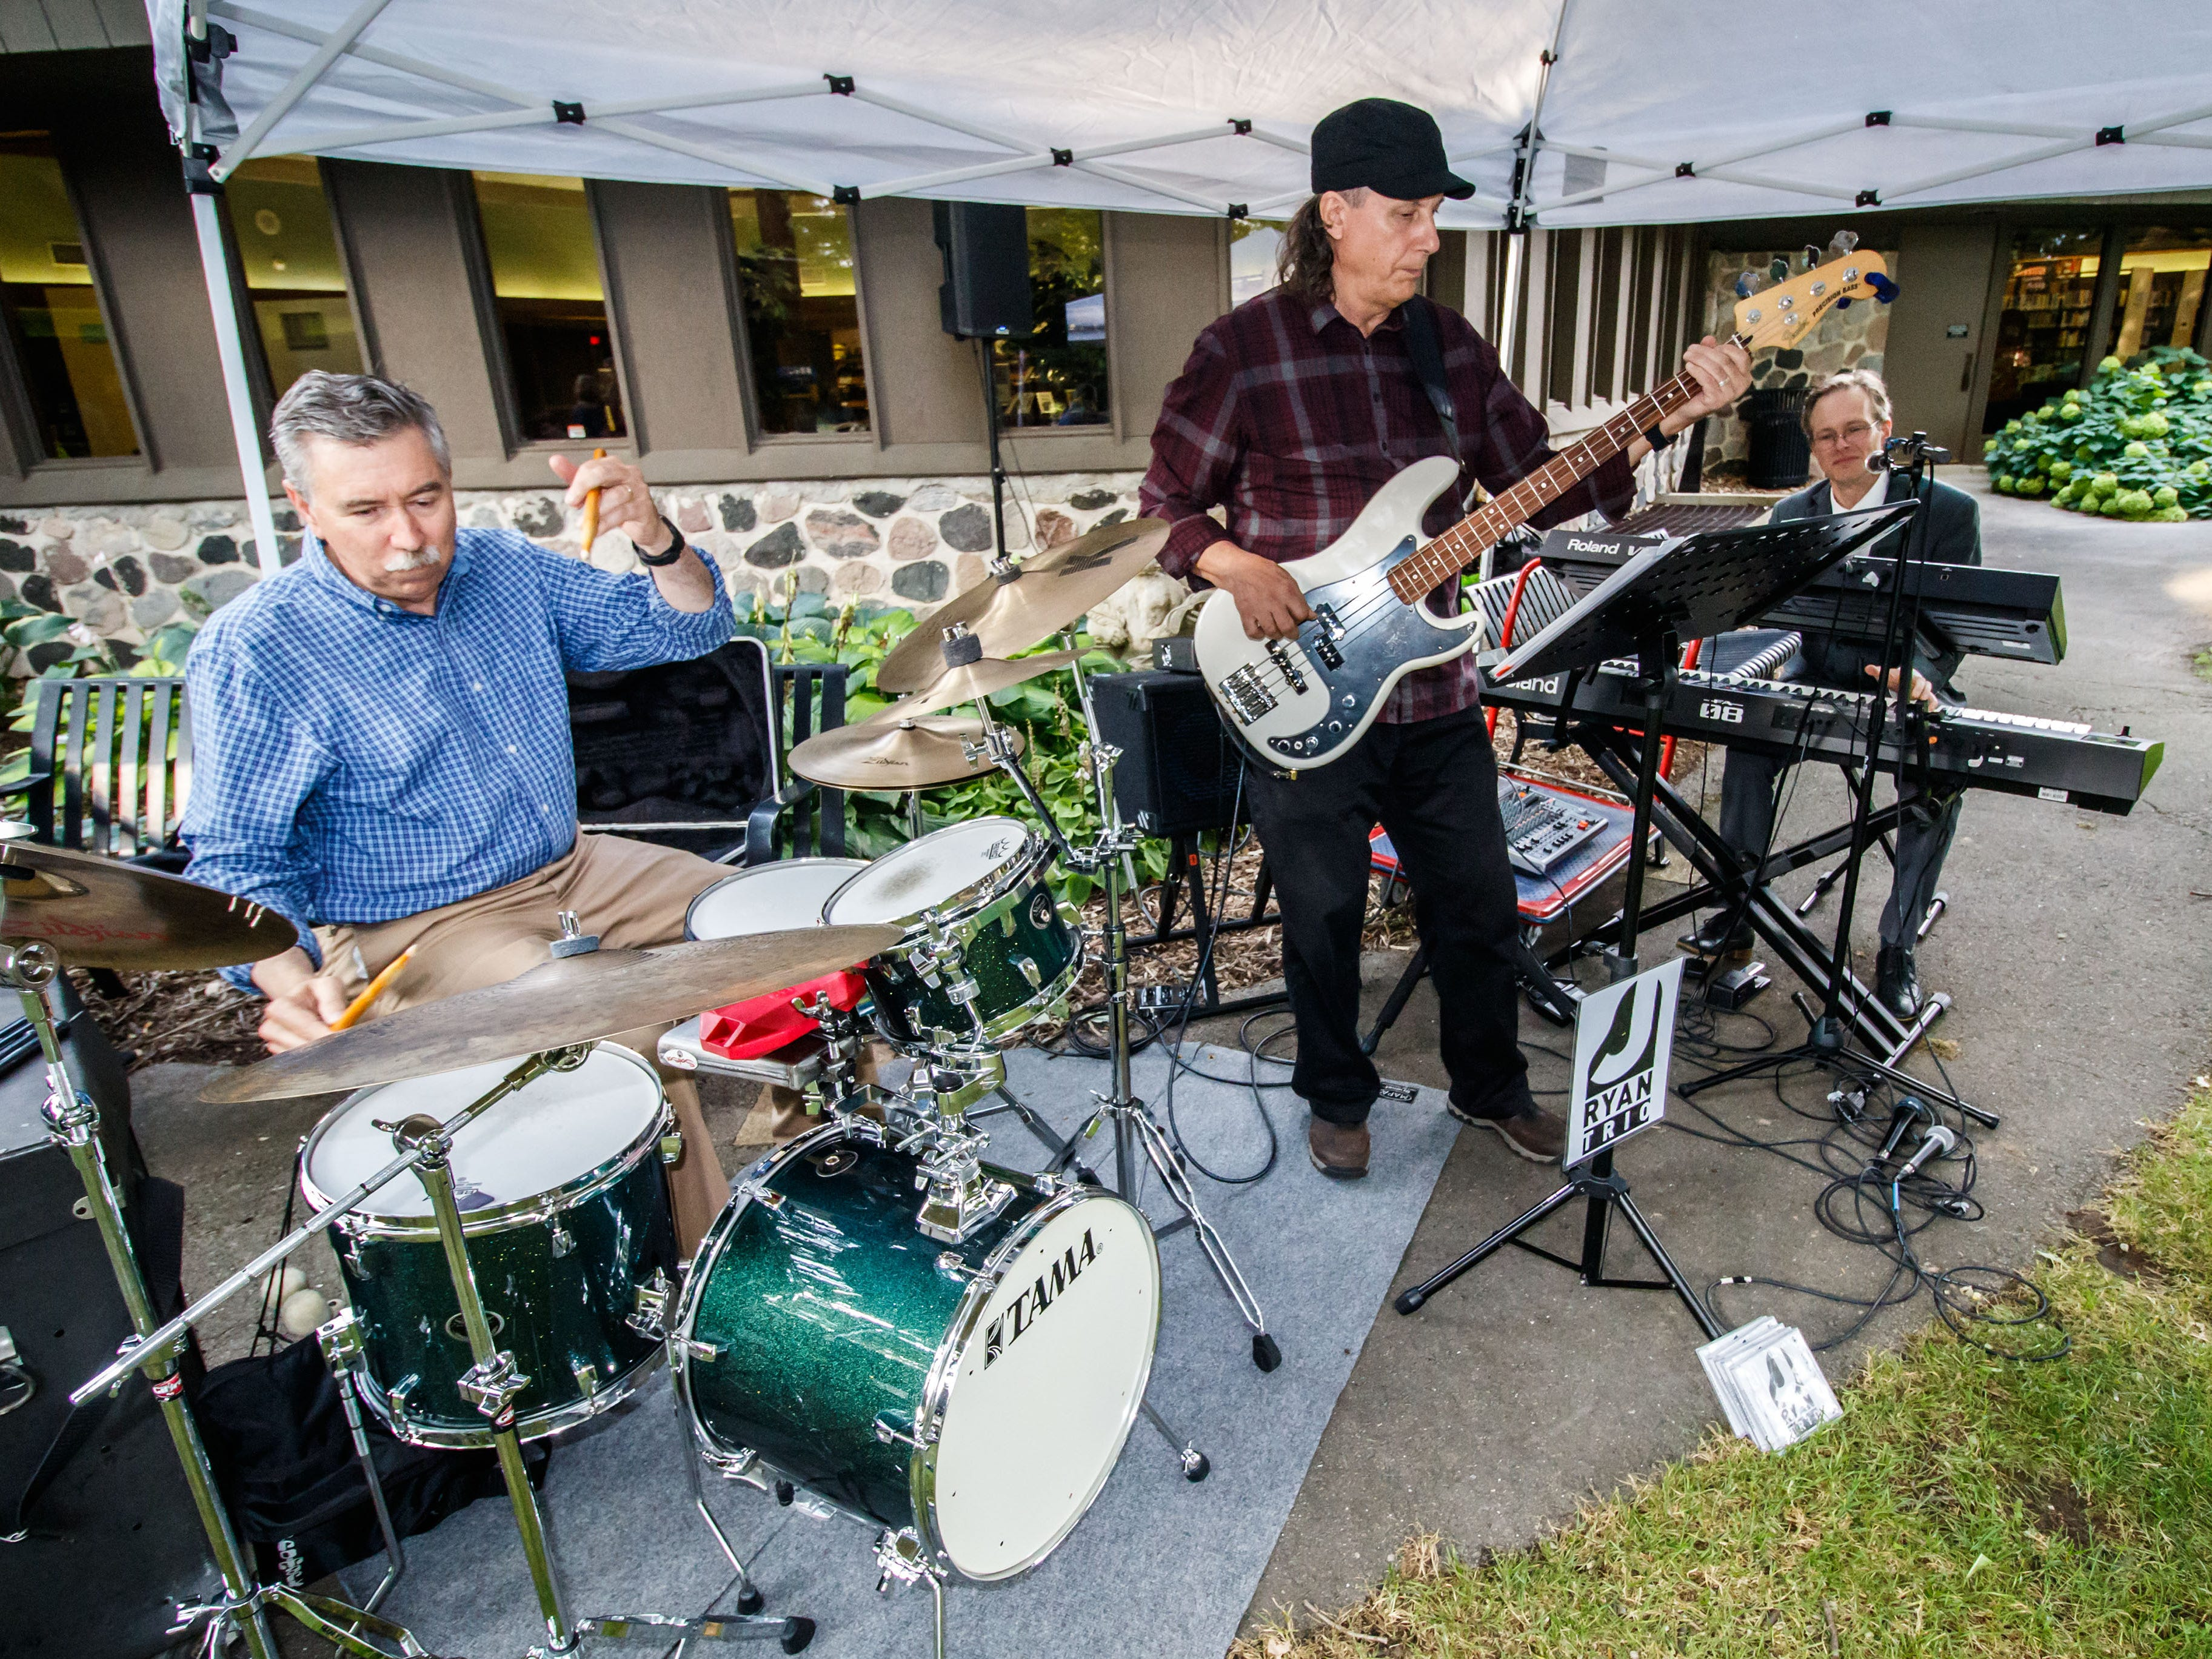 The J Ryan Trio entertains visitors with jazz standards and down home blues during the Brookfield Public Library's Ice Cream Social on Tuesday, August 7, 2018. The free event, sponsored by Friends of the Library, celebrates the end of Summer Reading with ice cream and music.